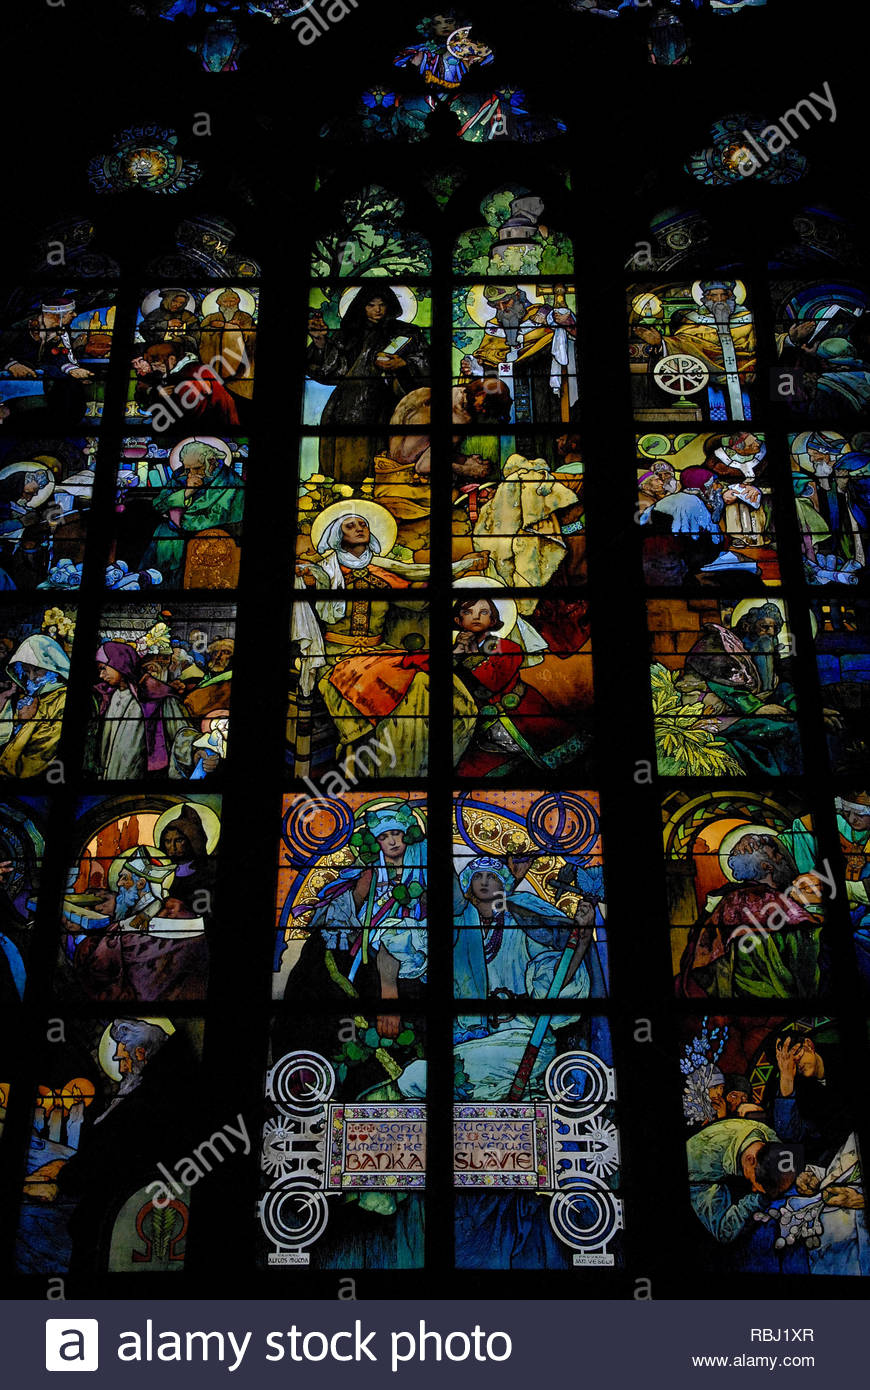 Prague, Czech Republic: Art Nouveau window in Cathedral of St. Vitus, The Lives of SS. Cyril & Methodius by Moravian artist Alfons Mucha (1860-1939). - Stock Image